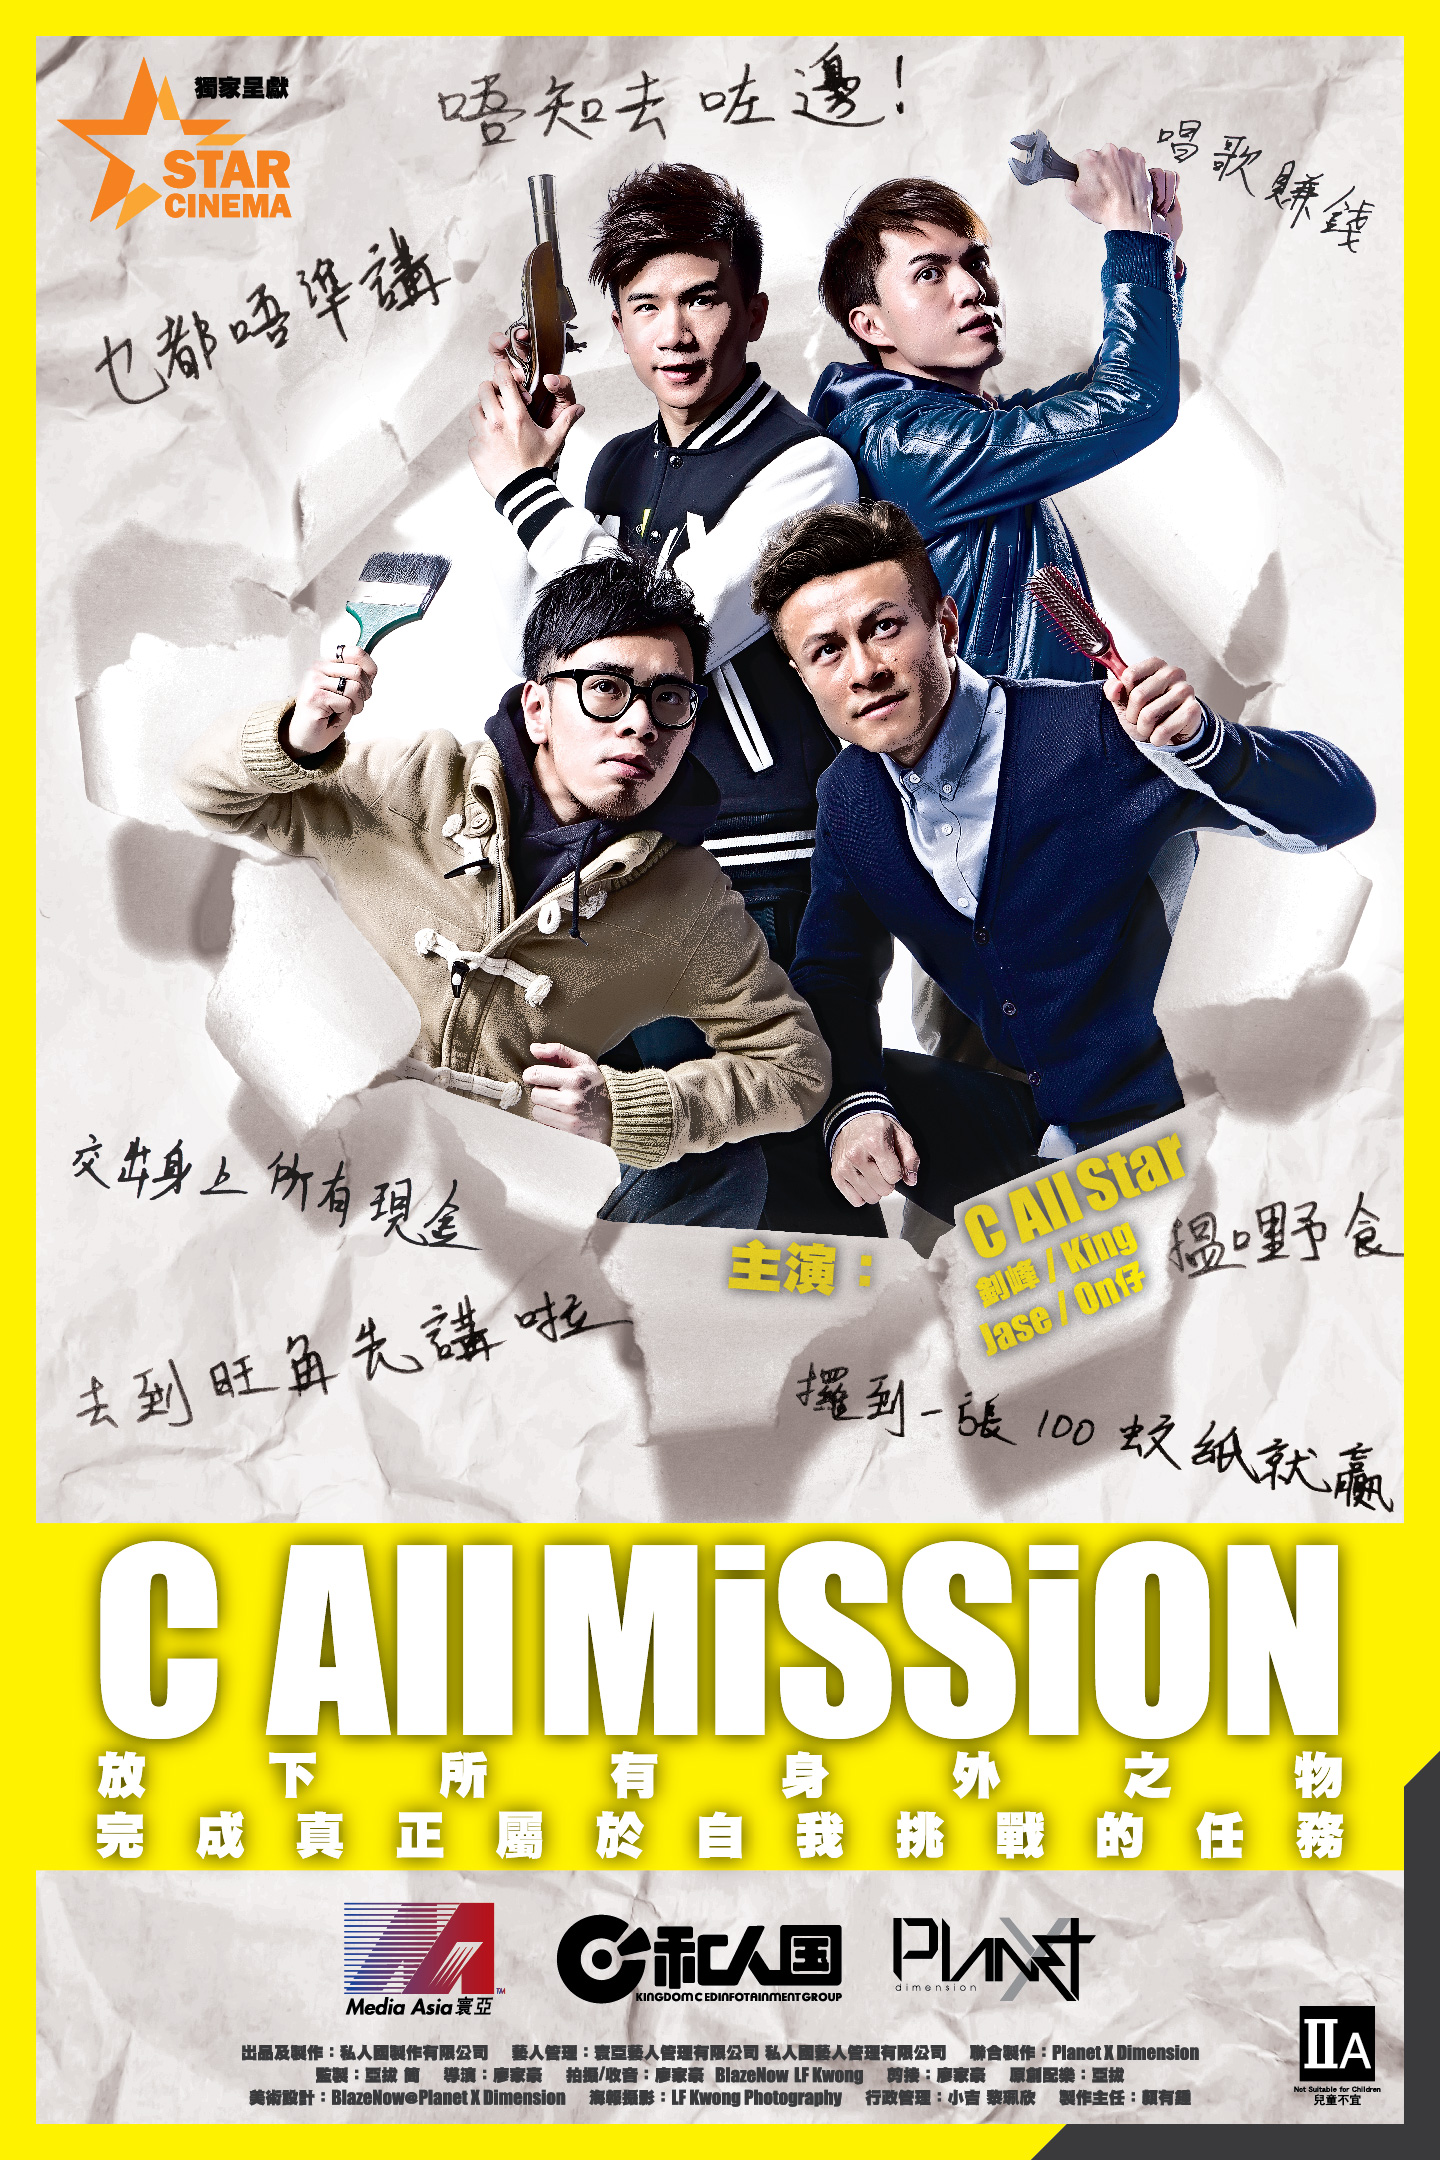 CAllMission Movie Poster